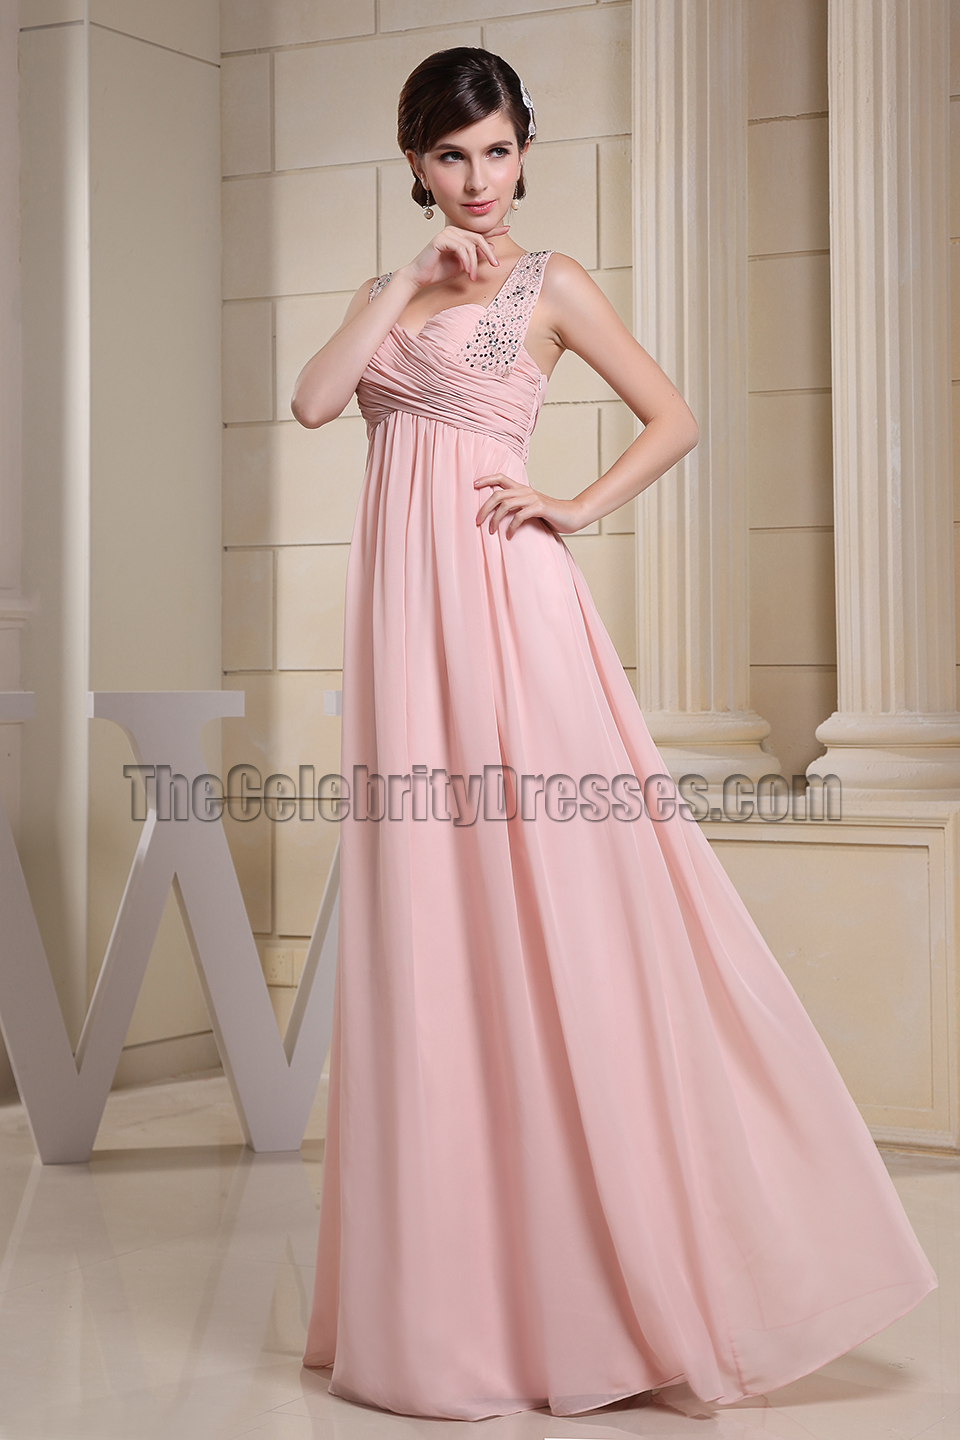 Sweetheart Pink Beaded Prom Dresses Evening Gowns - TheCelebrityDresses